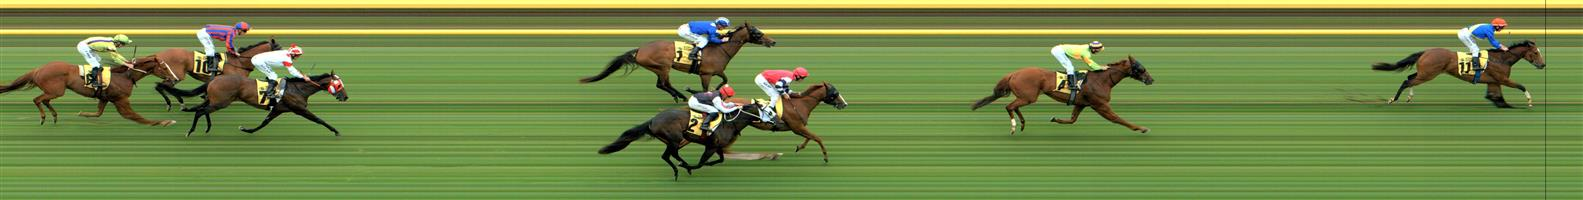 Ballarat Race 5 No.6 No Emotion @ $14 - price unlikely   Result : Non Qualifier - Unplaced at SP $15.00